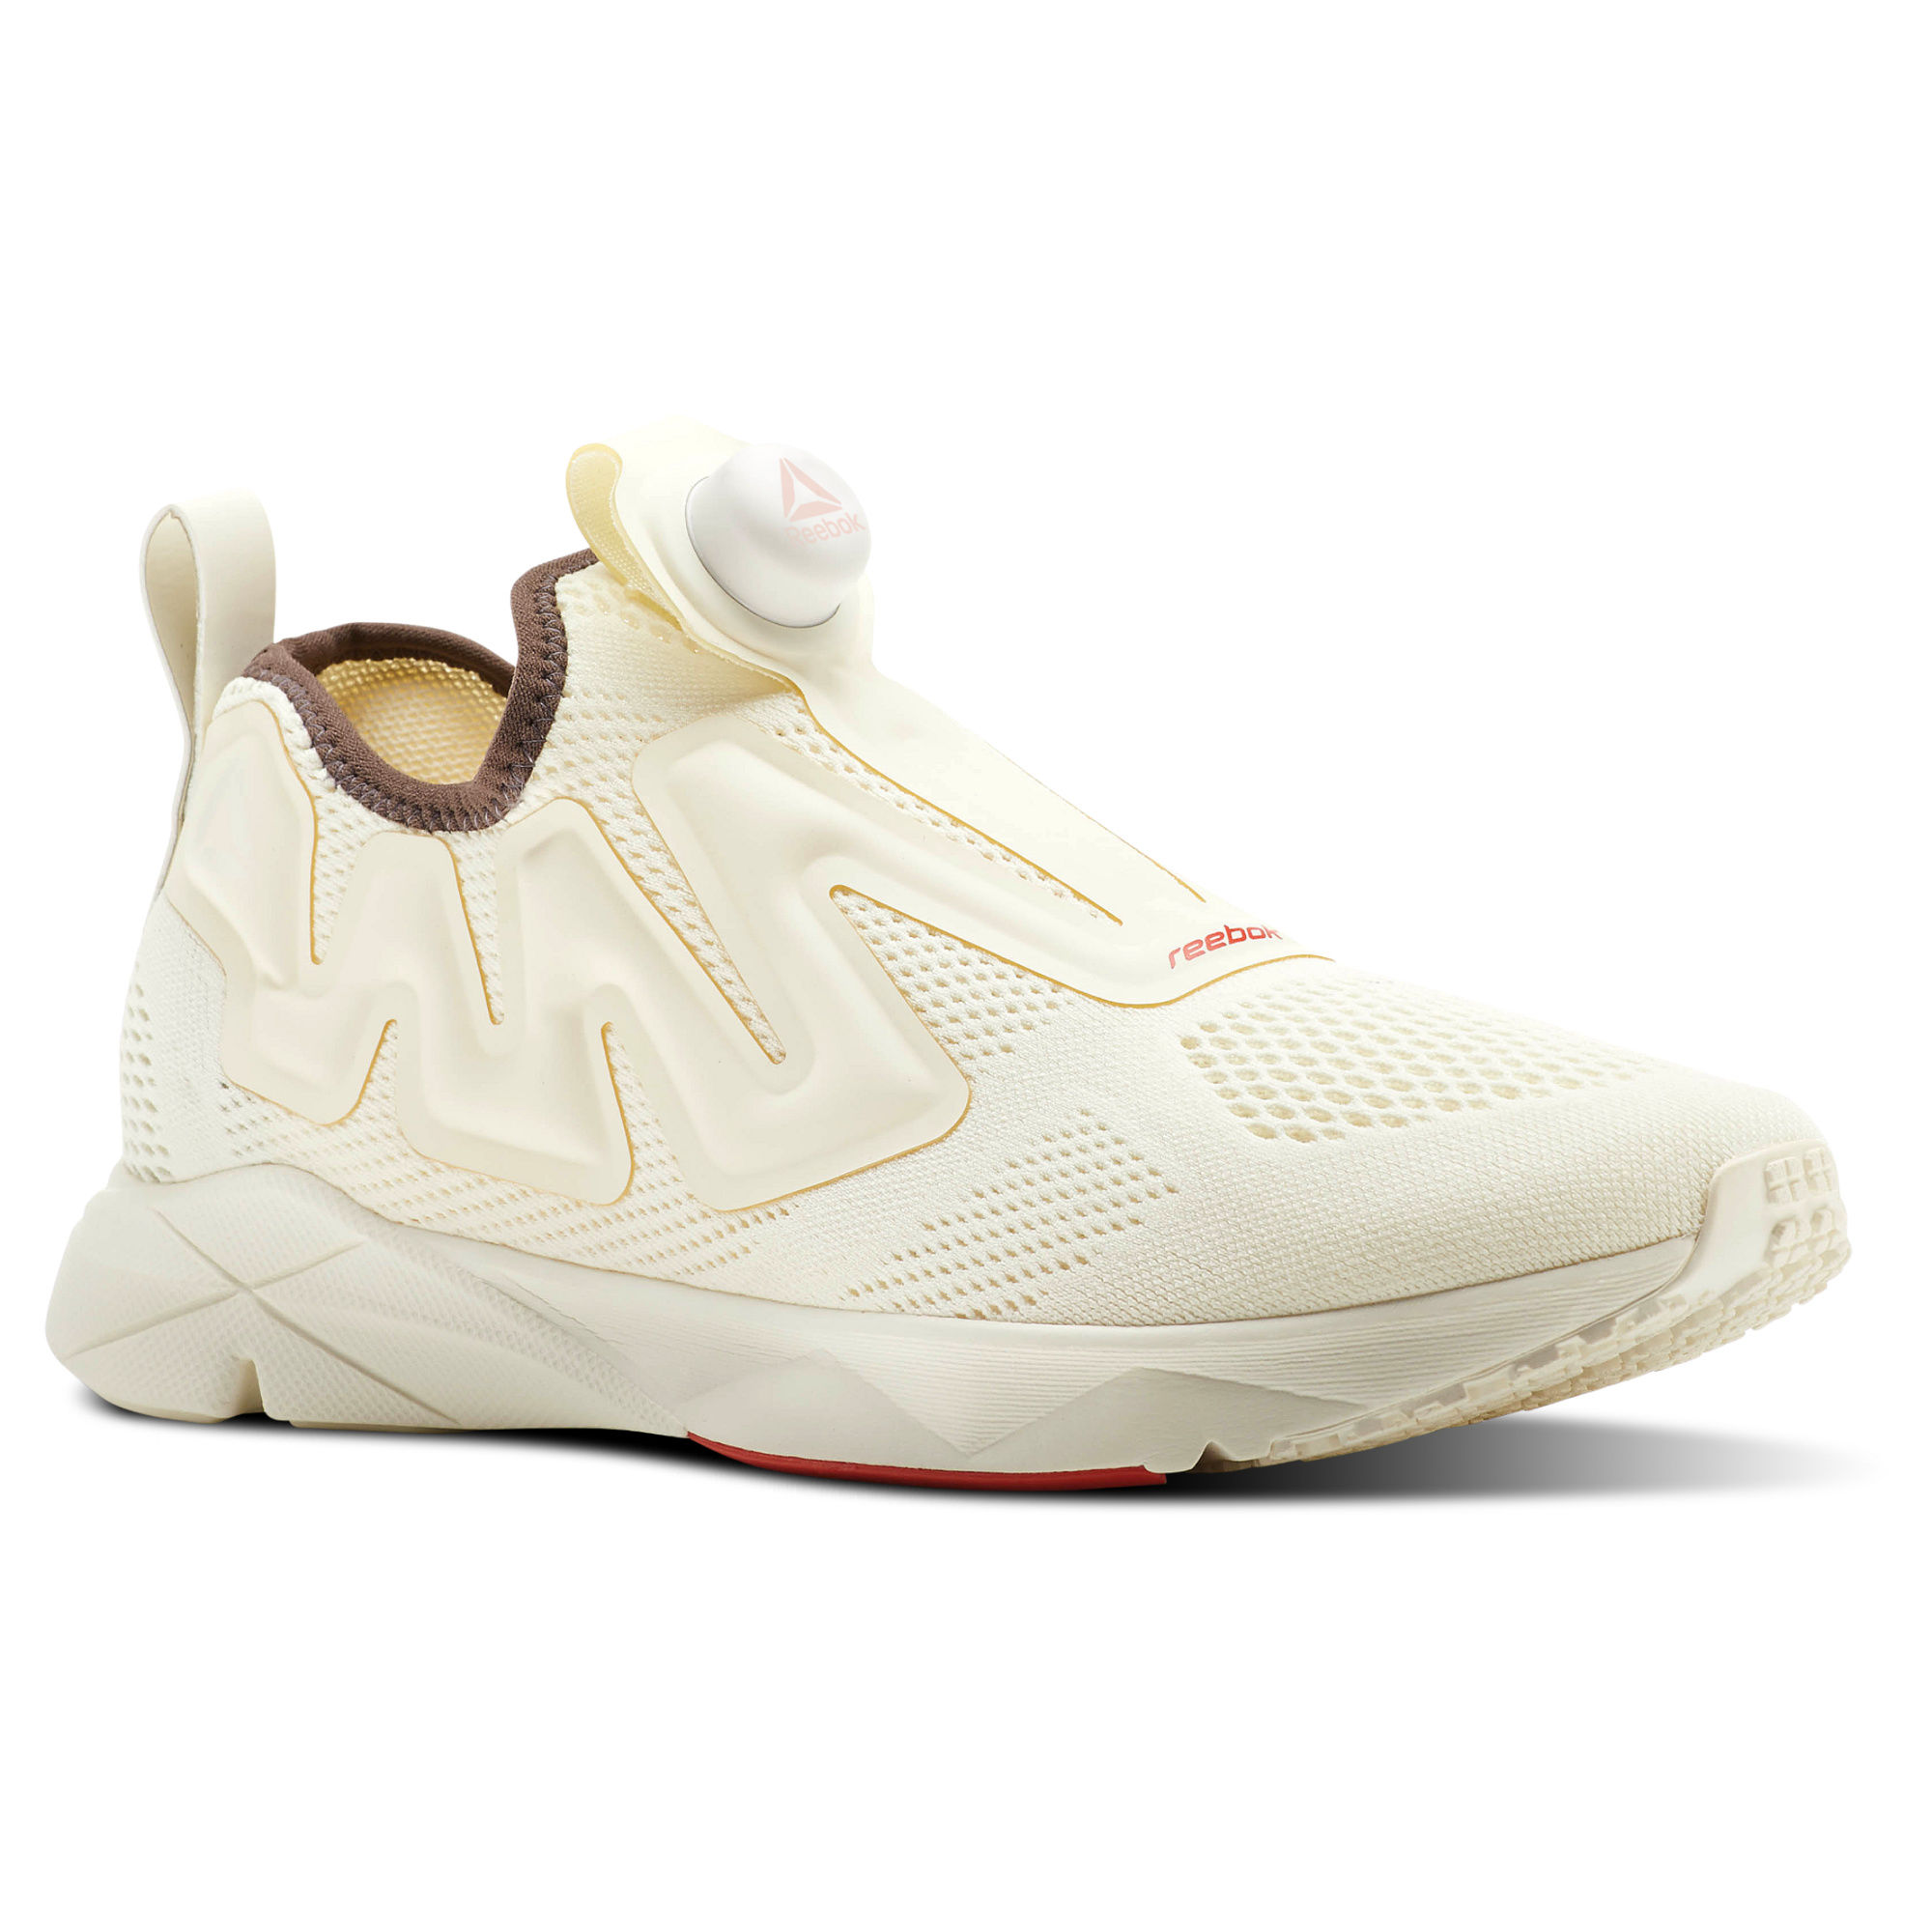 Reebok Pump Supreme Style Mens Beige Running Shoes (454NJHUV)